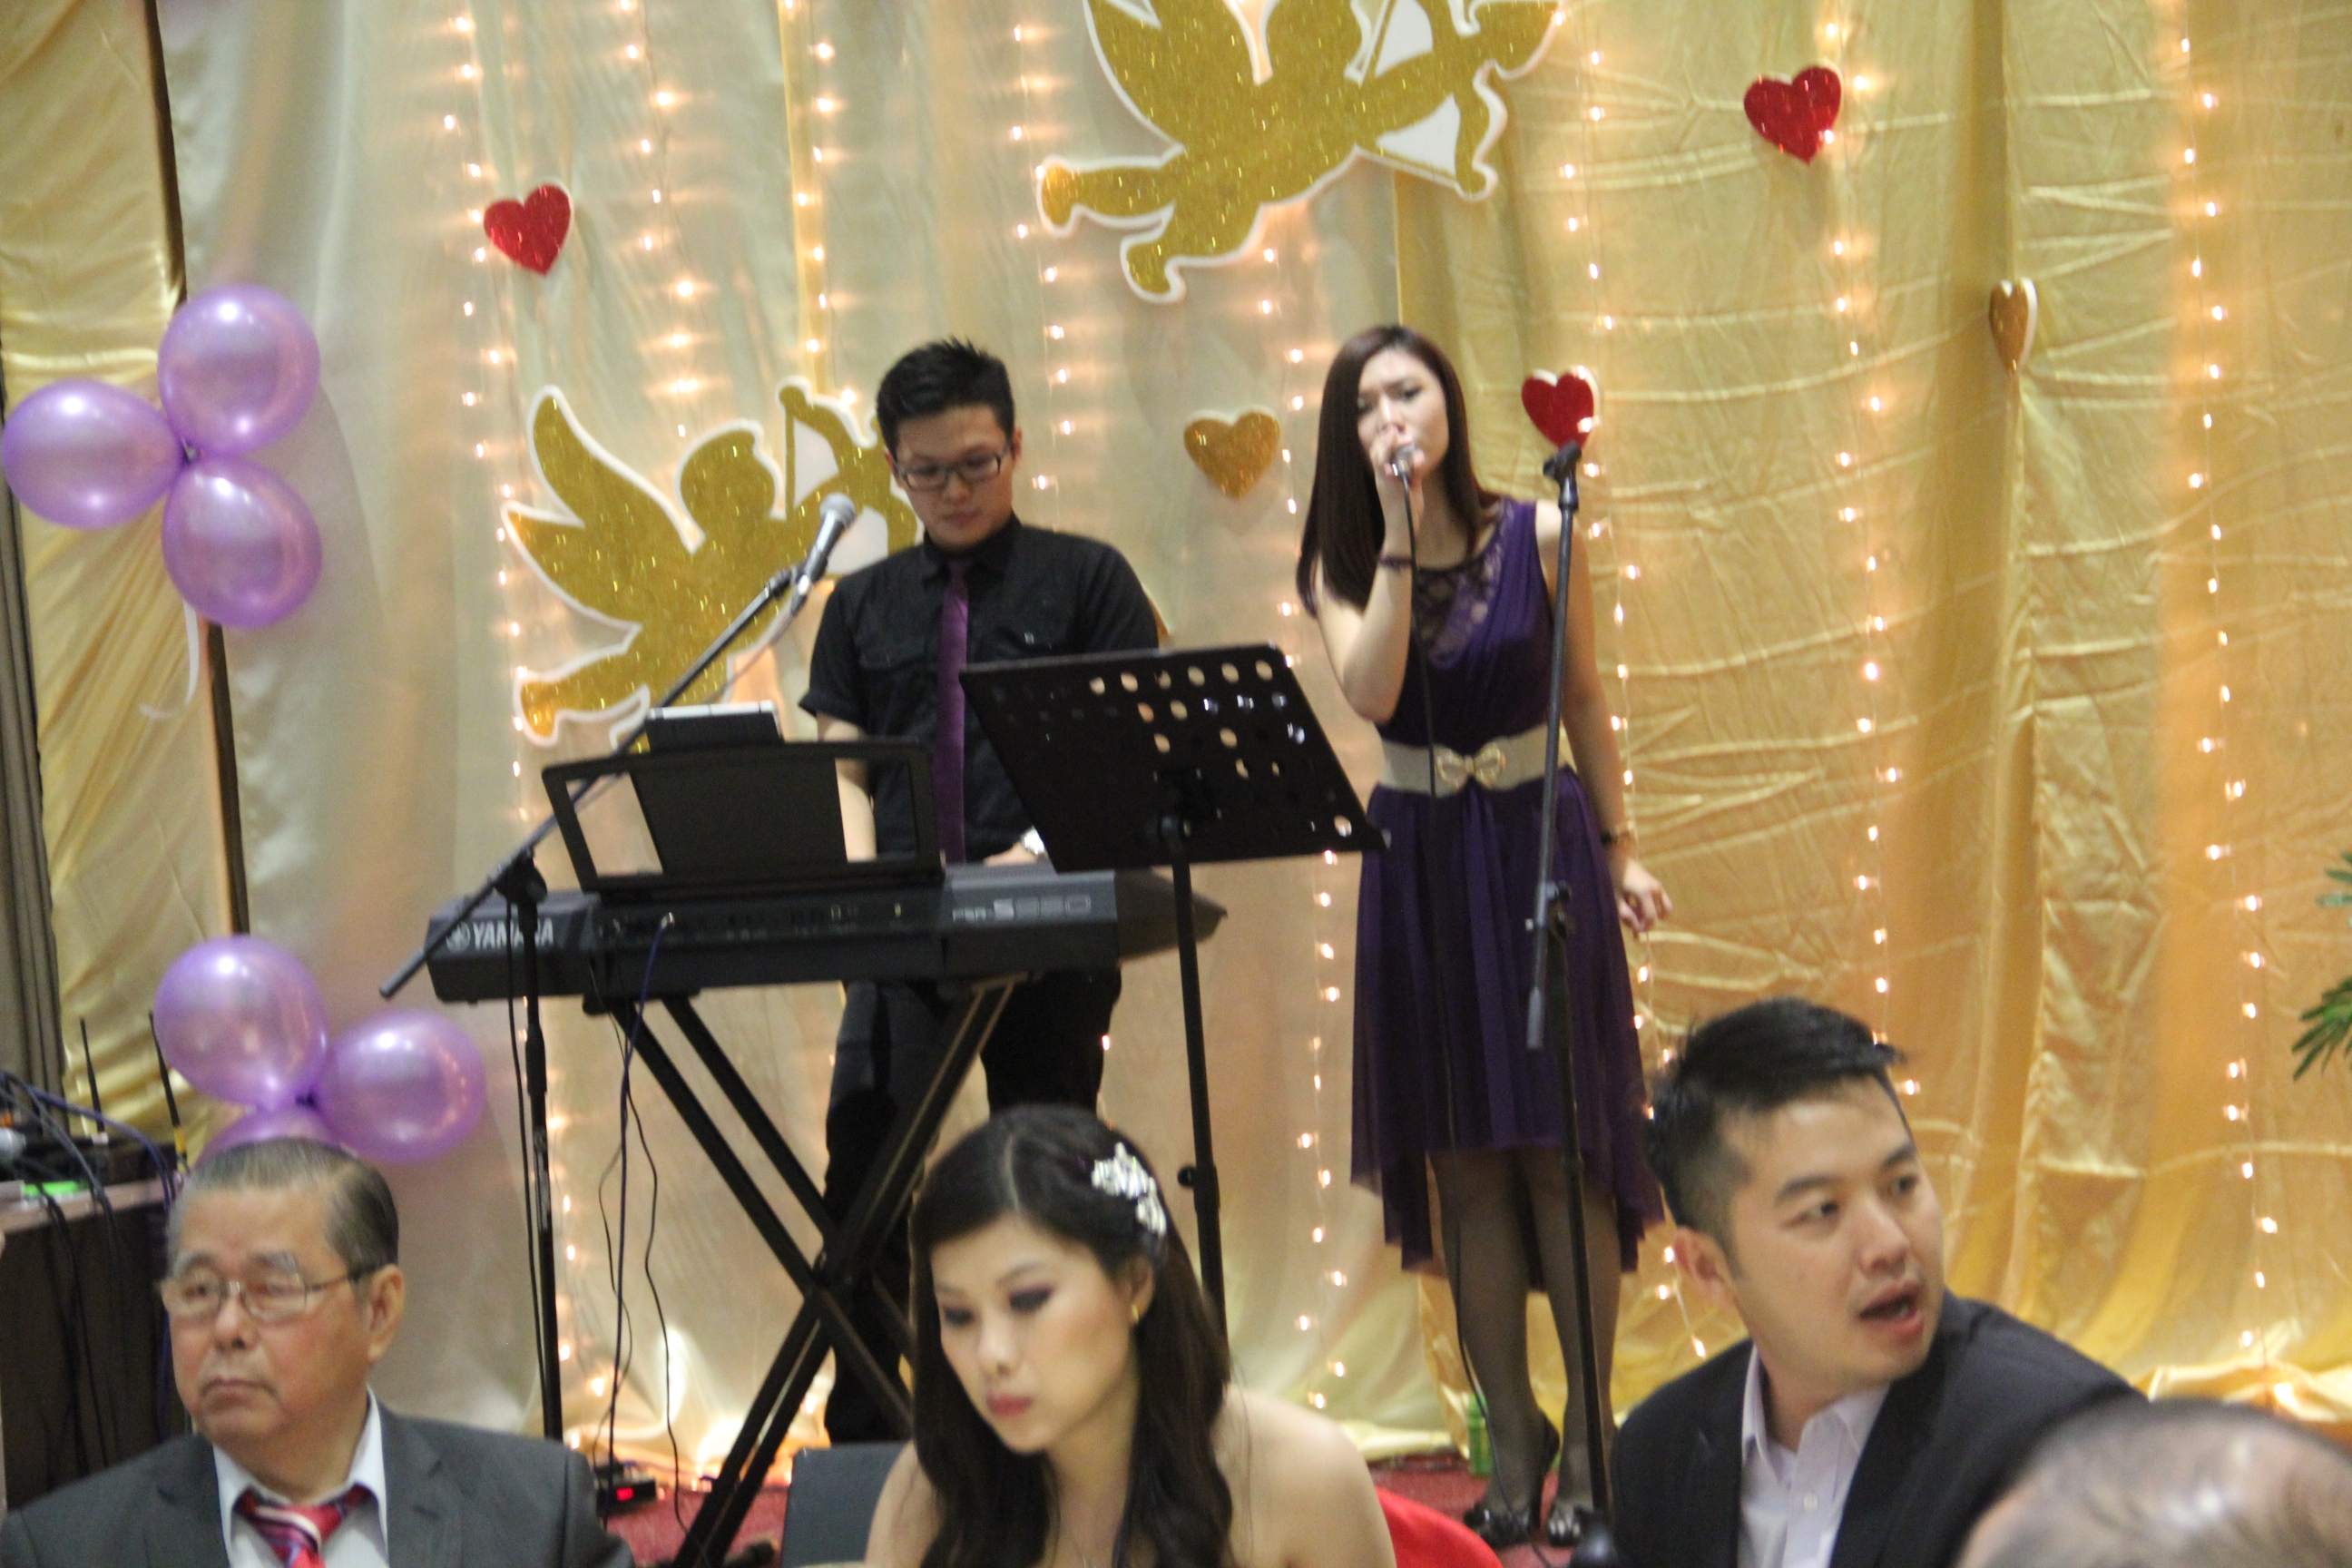 live reception music lumpur wedding the syuen bryan malcolm bands hotel theweddingband band and at s kuala service ashley ipoh img